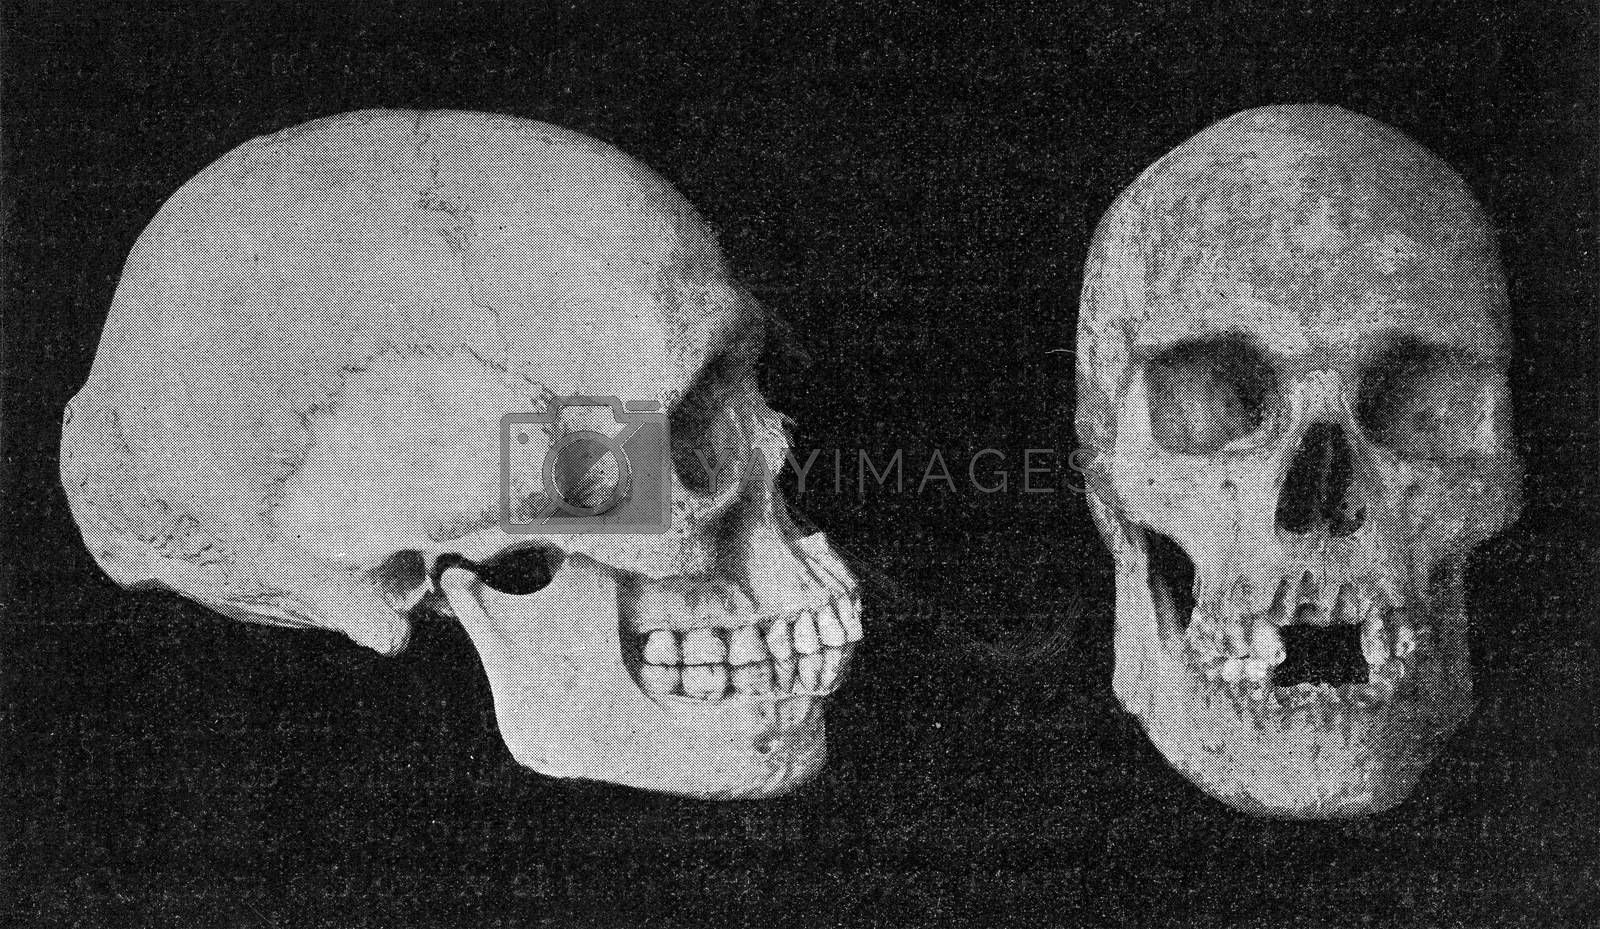 Skulls of elderly Australian men, vintage engraved illustration. From the Universe and Humanity, 1910.